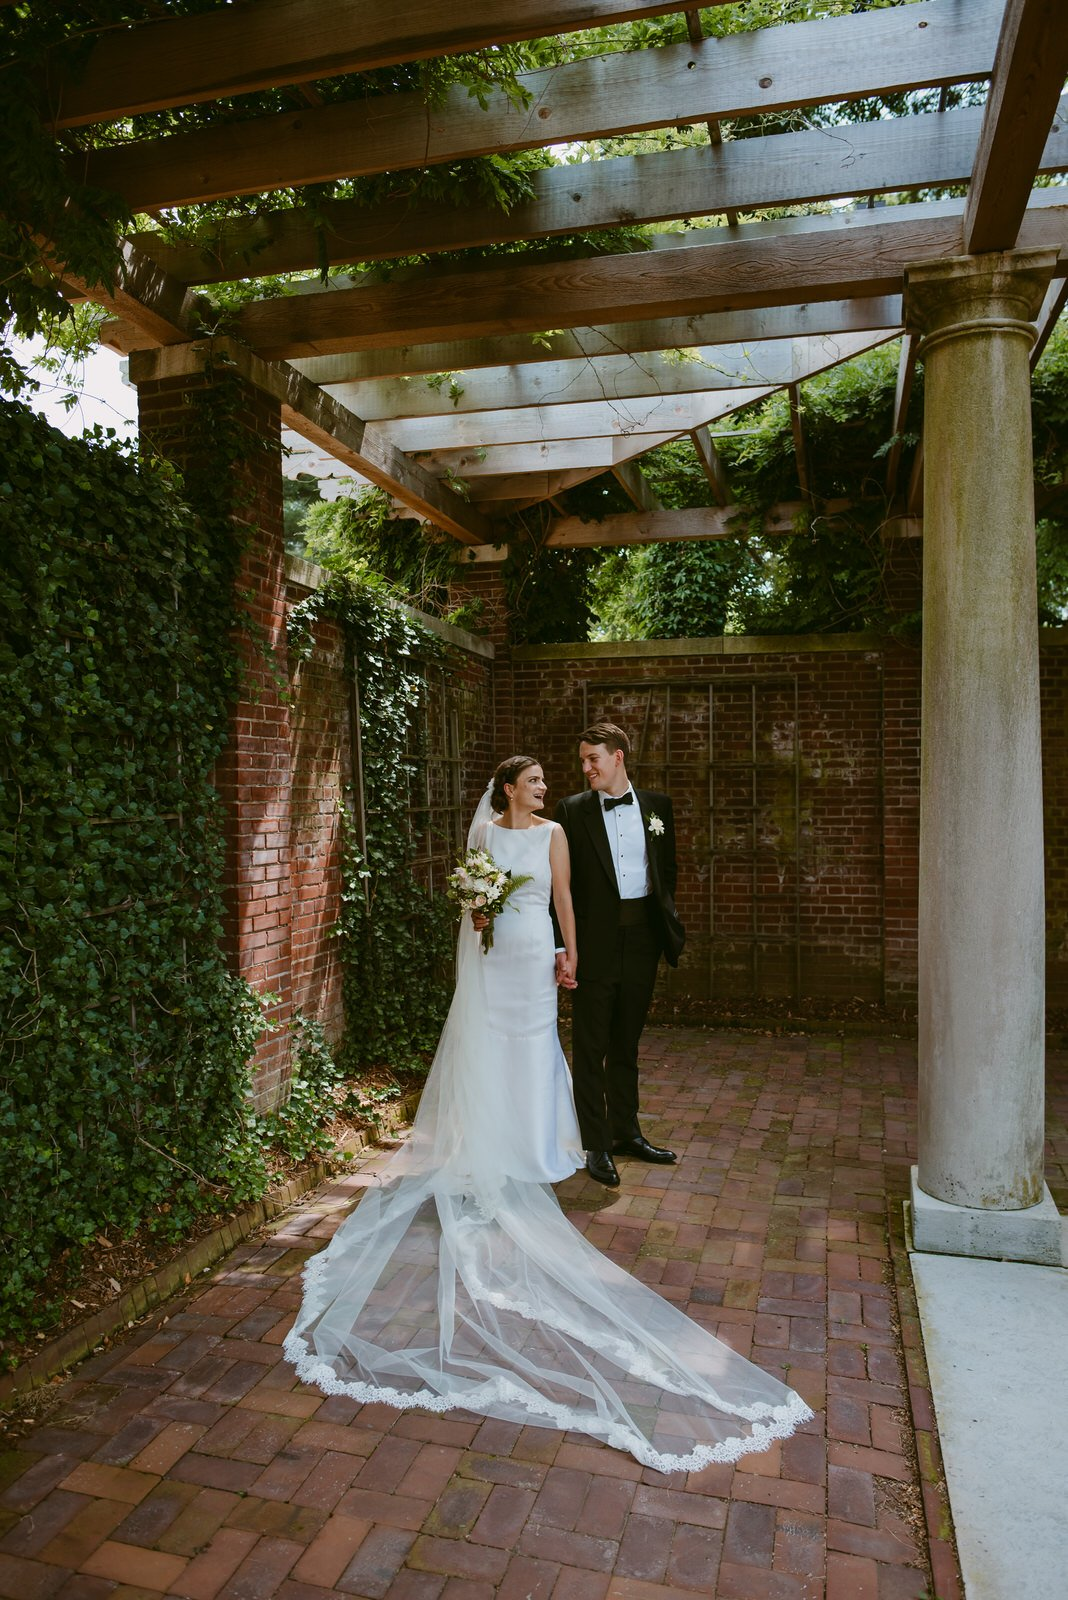 bride in classic dress with cathedral veil and groom in tux hold hands smile at each other beneath long tunnel arbor at Garden Court Venue